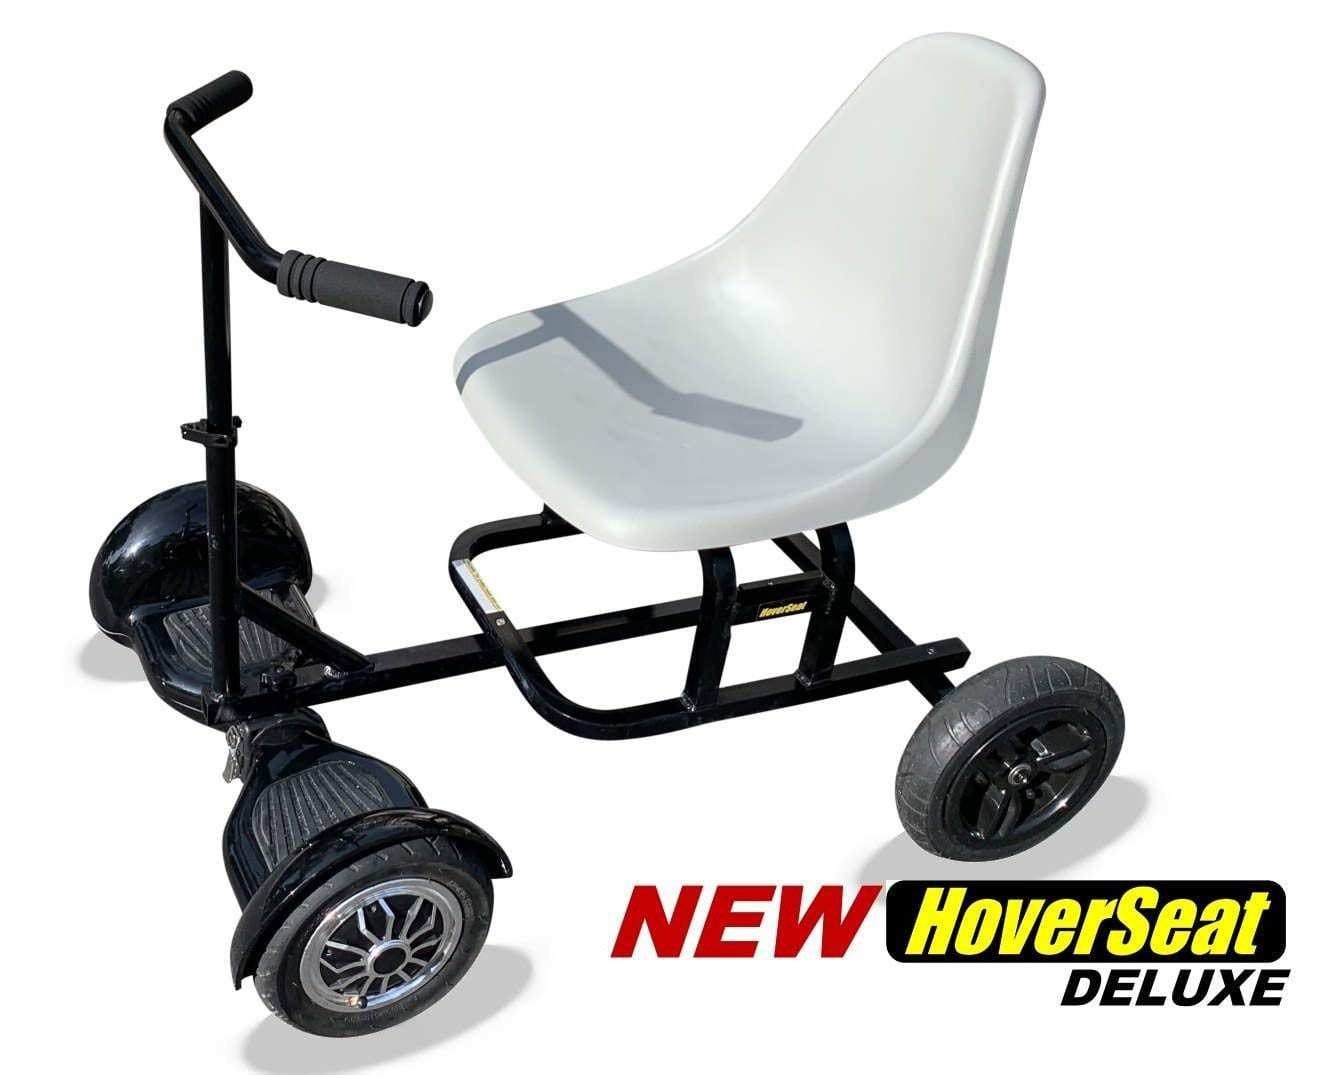 HoverSeat Deluxe - Seating Attachment for Hoverboard Self Balancing Scooter